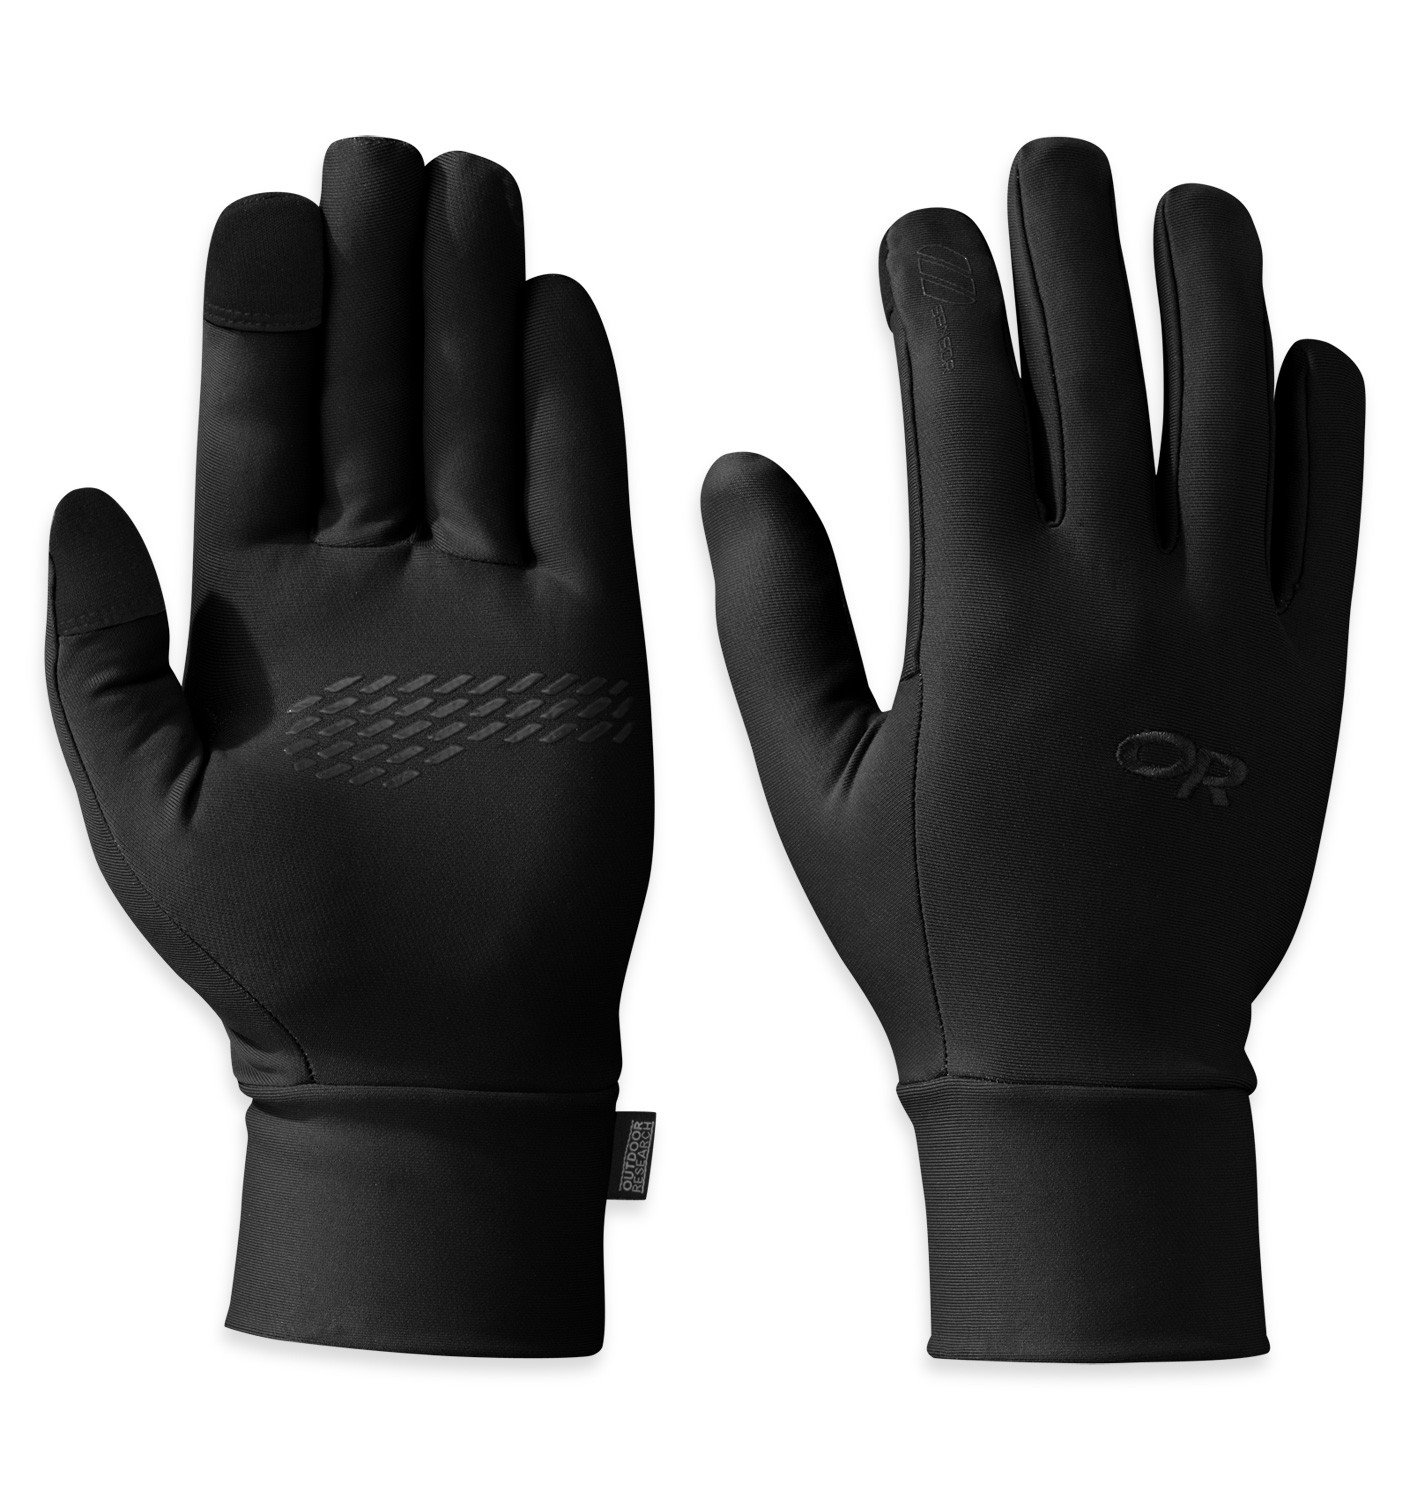 Mens gloves next - Amazon Com Outdoor Research Men S Pl Base Sensor Gloves Sports Outdoors